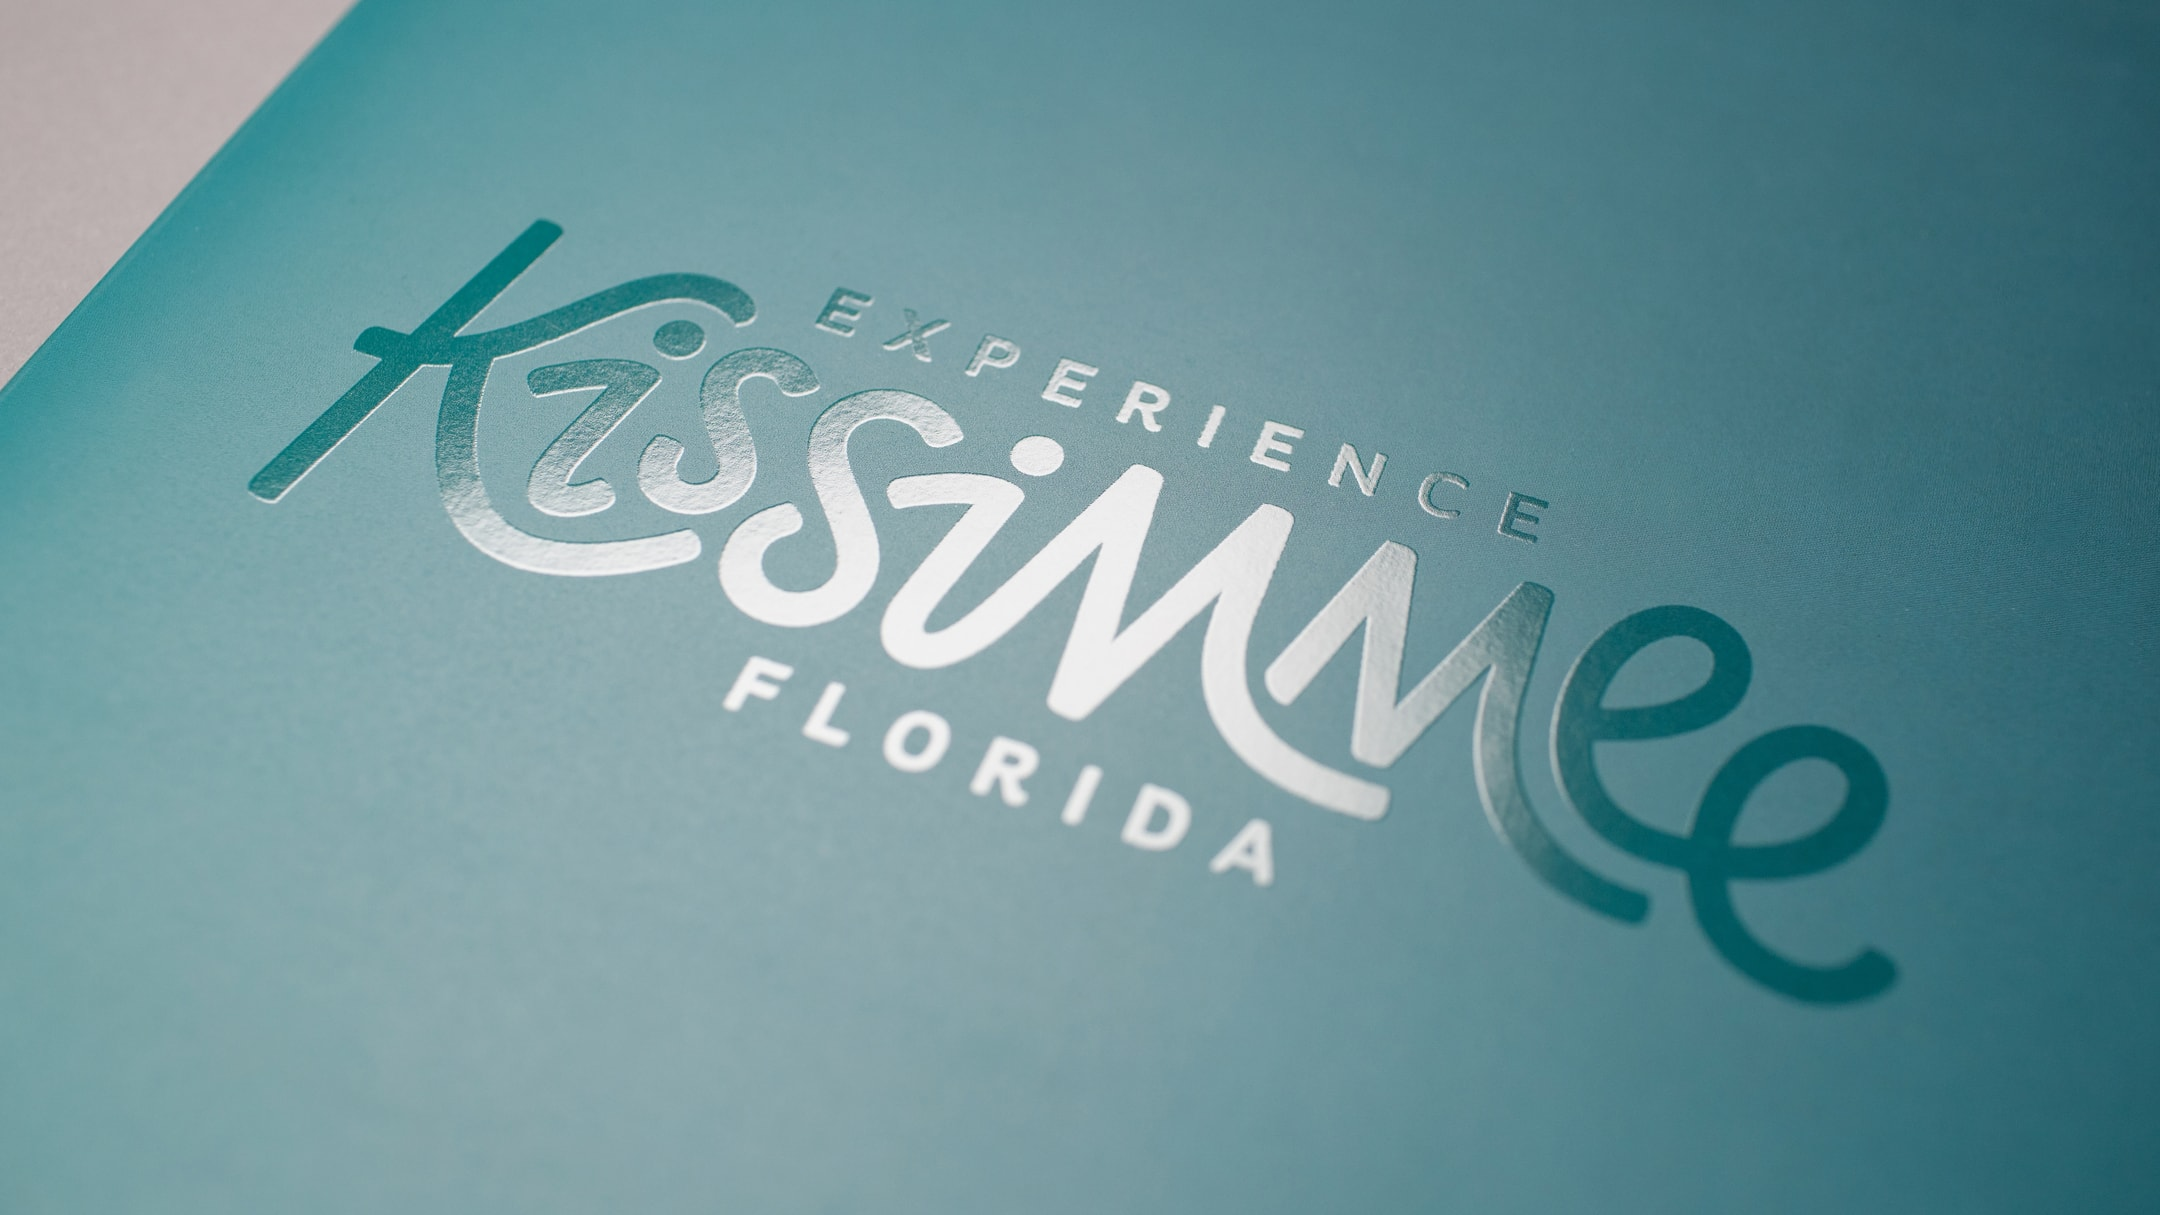 Experience Kissimmee Destination marketing and rebrand - new logo design